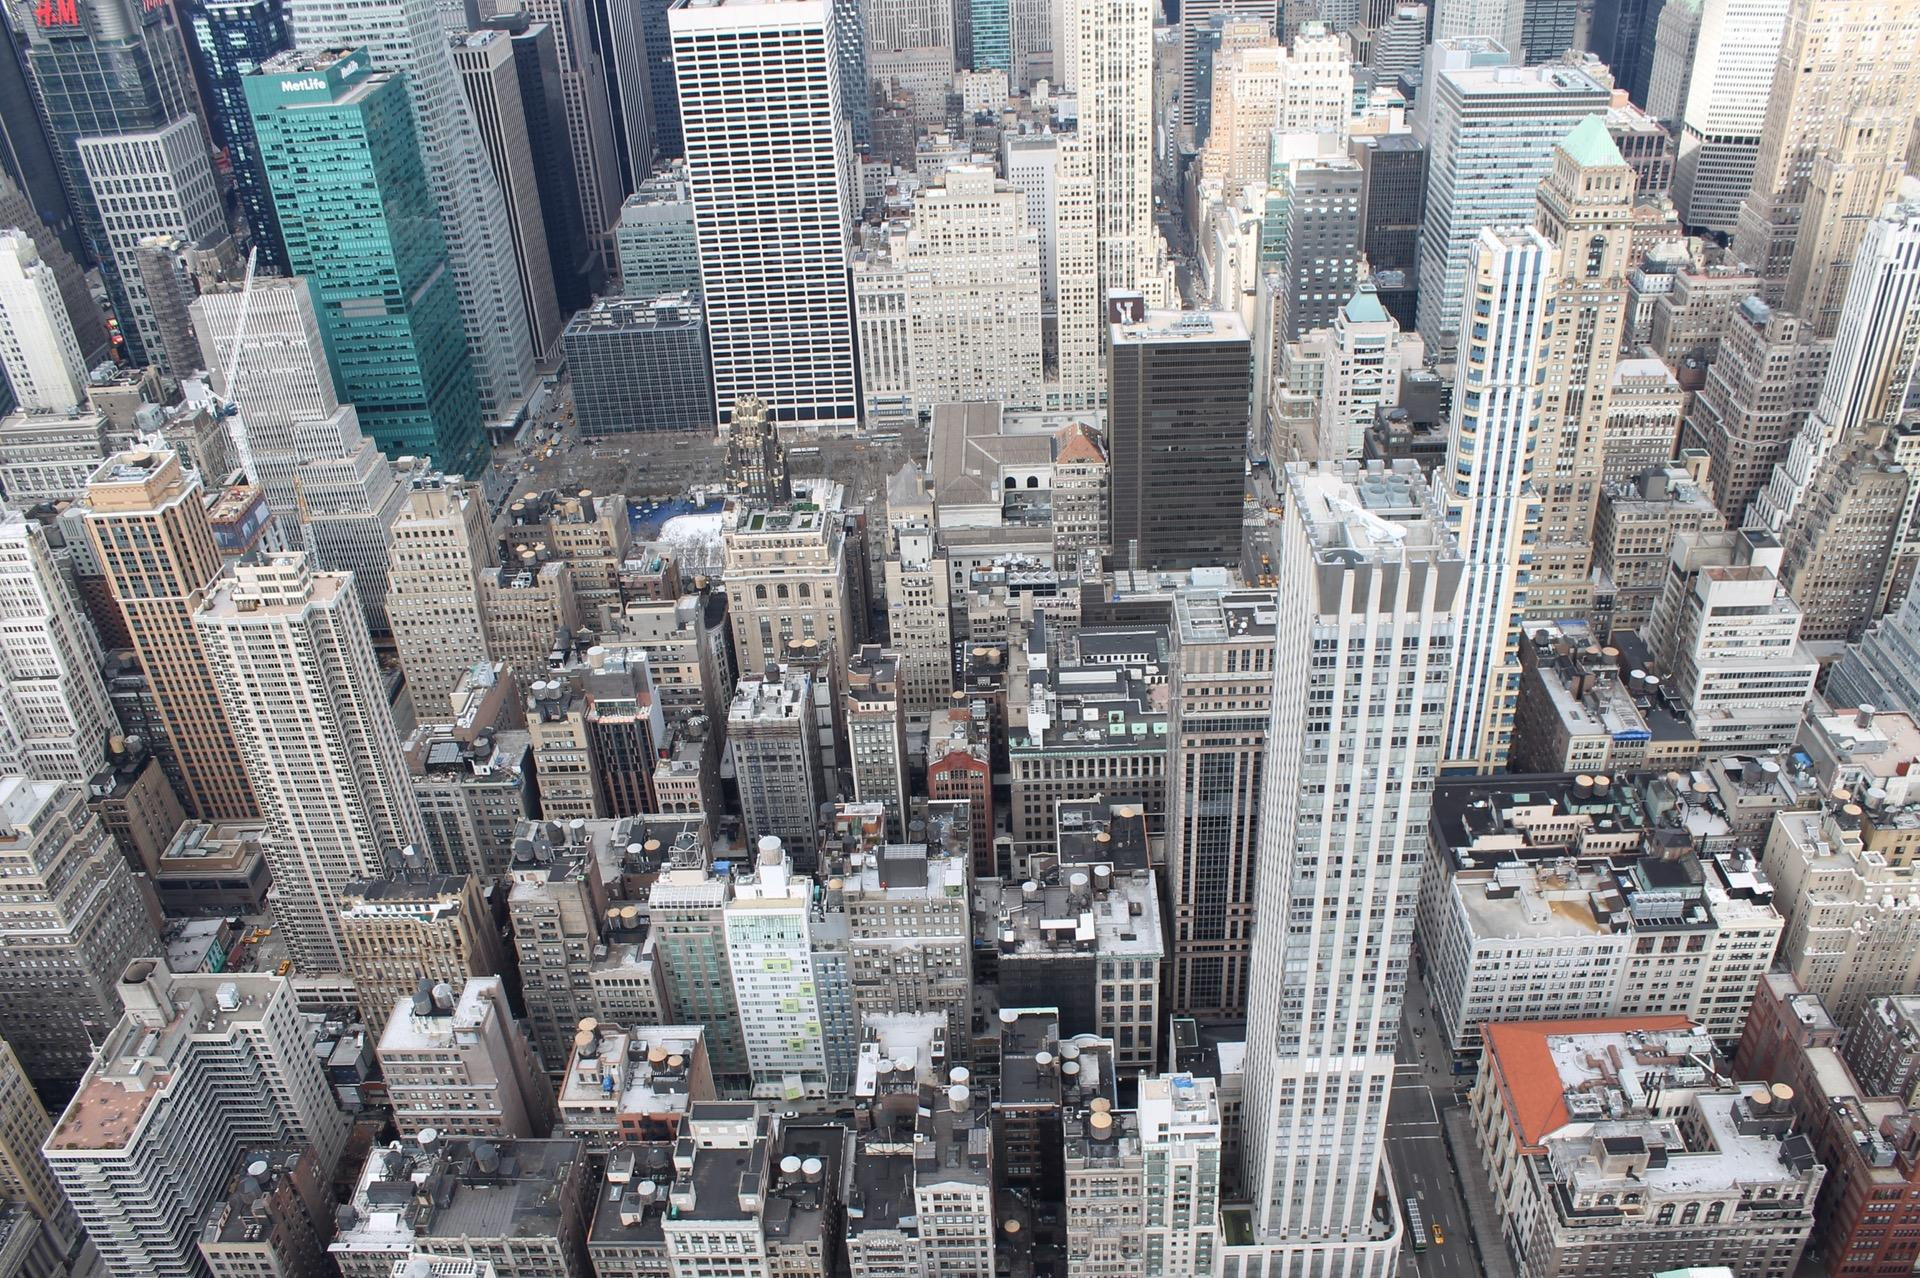 new-york-buildings-tall-top-view-48896.jpeg